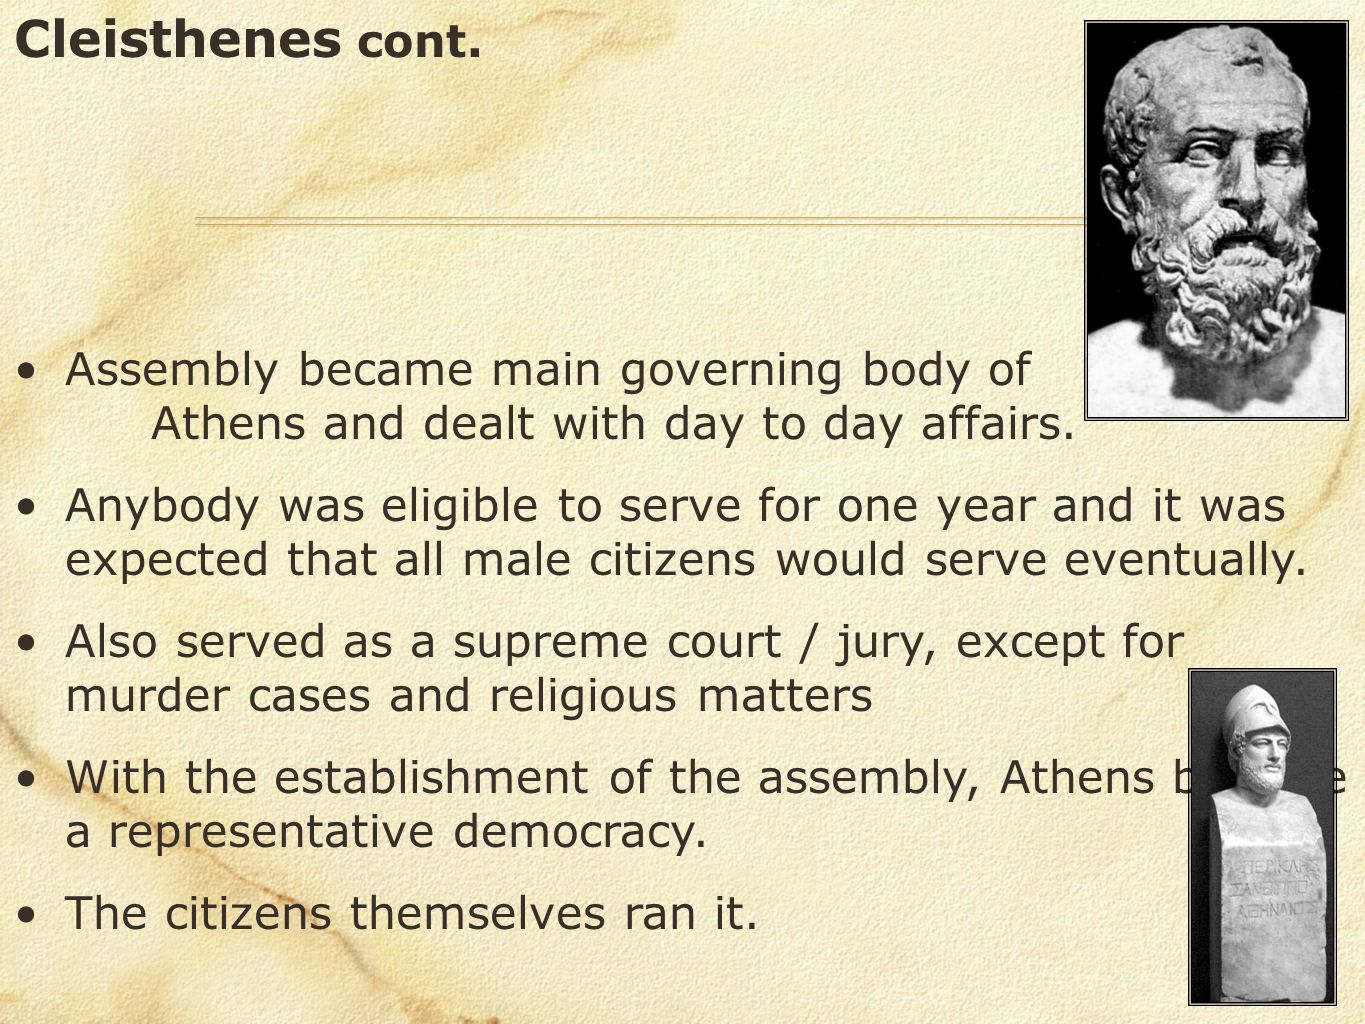 Cleisthenes cont. Assembly became main governing body of Athens and dealt with day to day affairs.